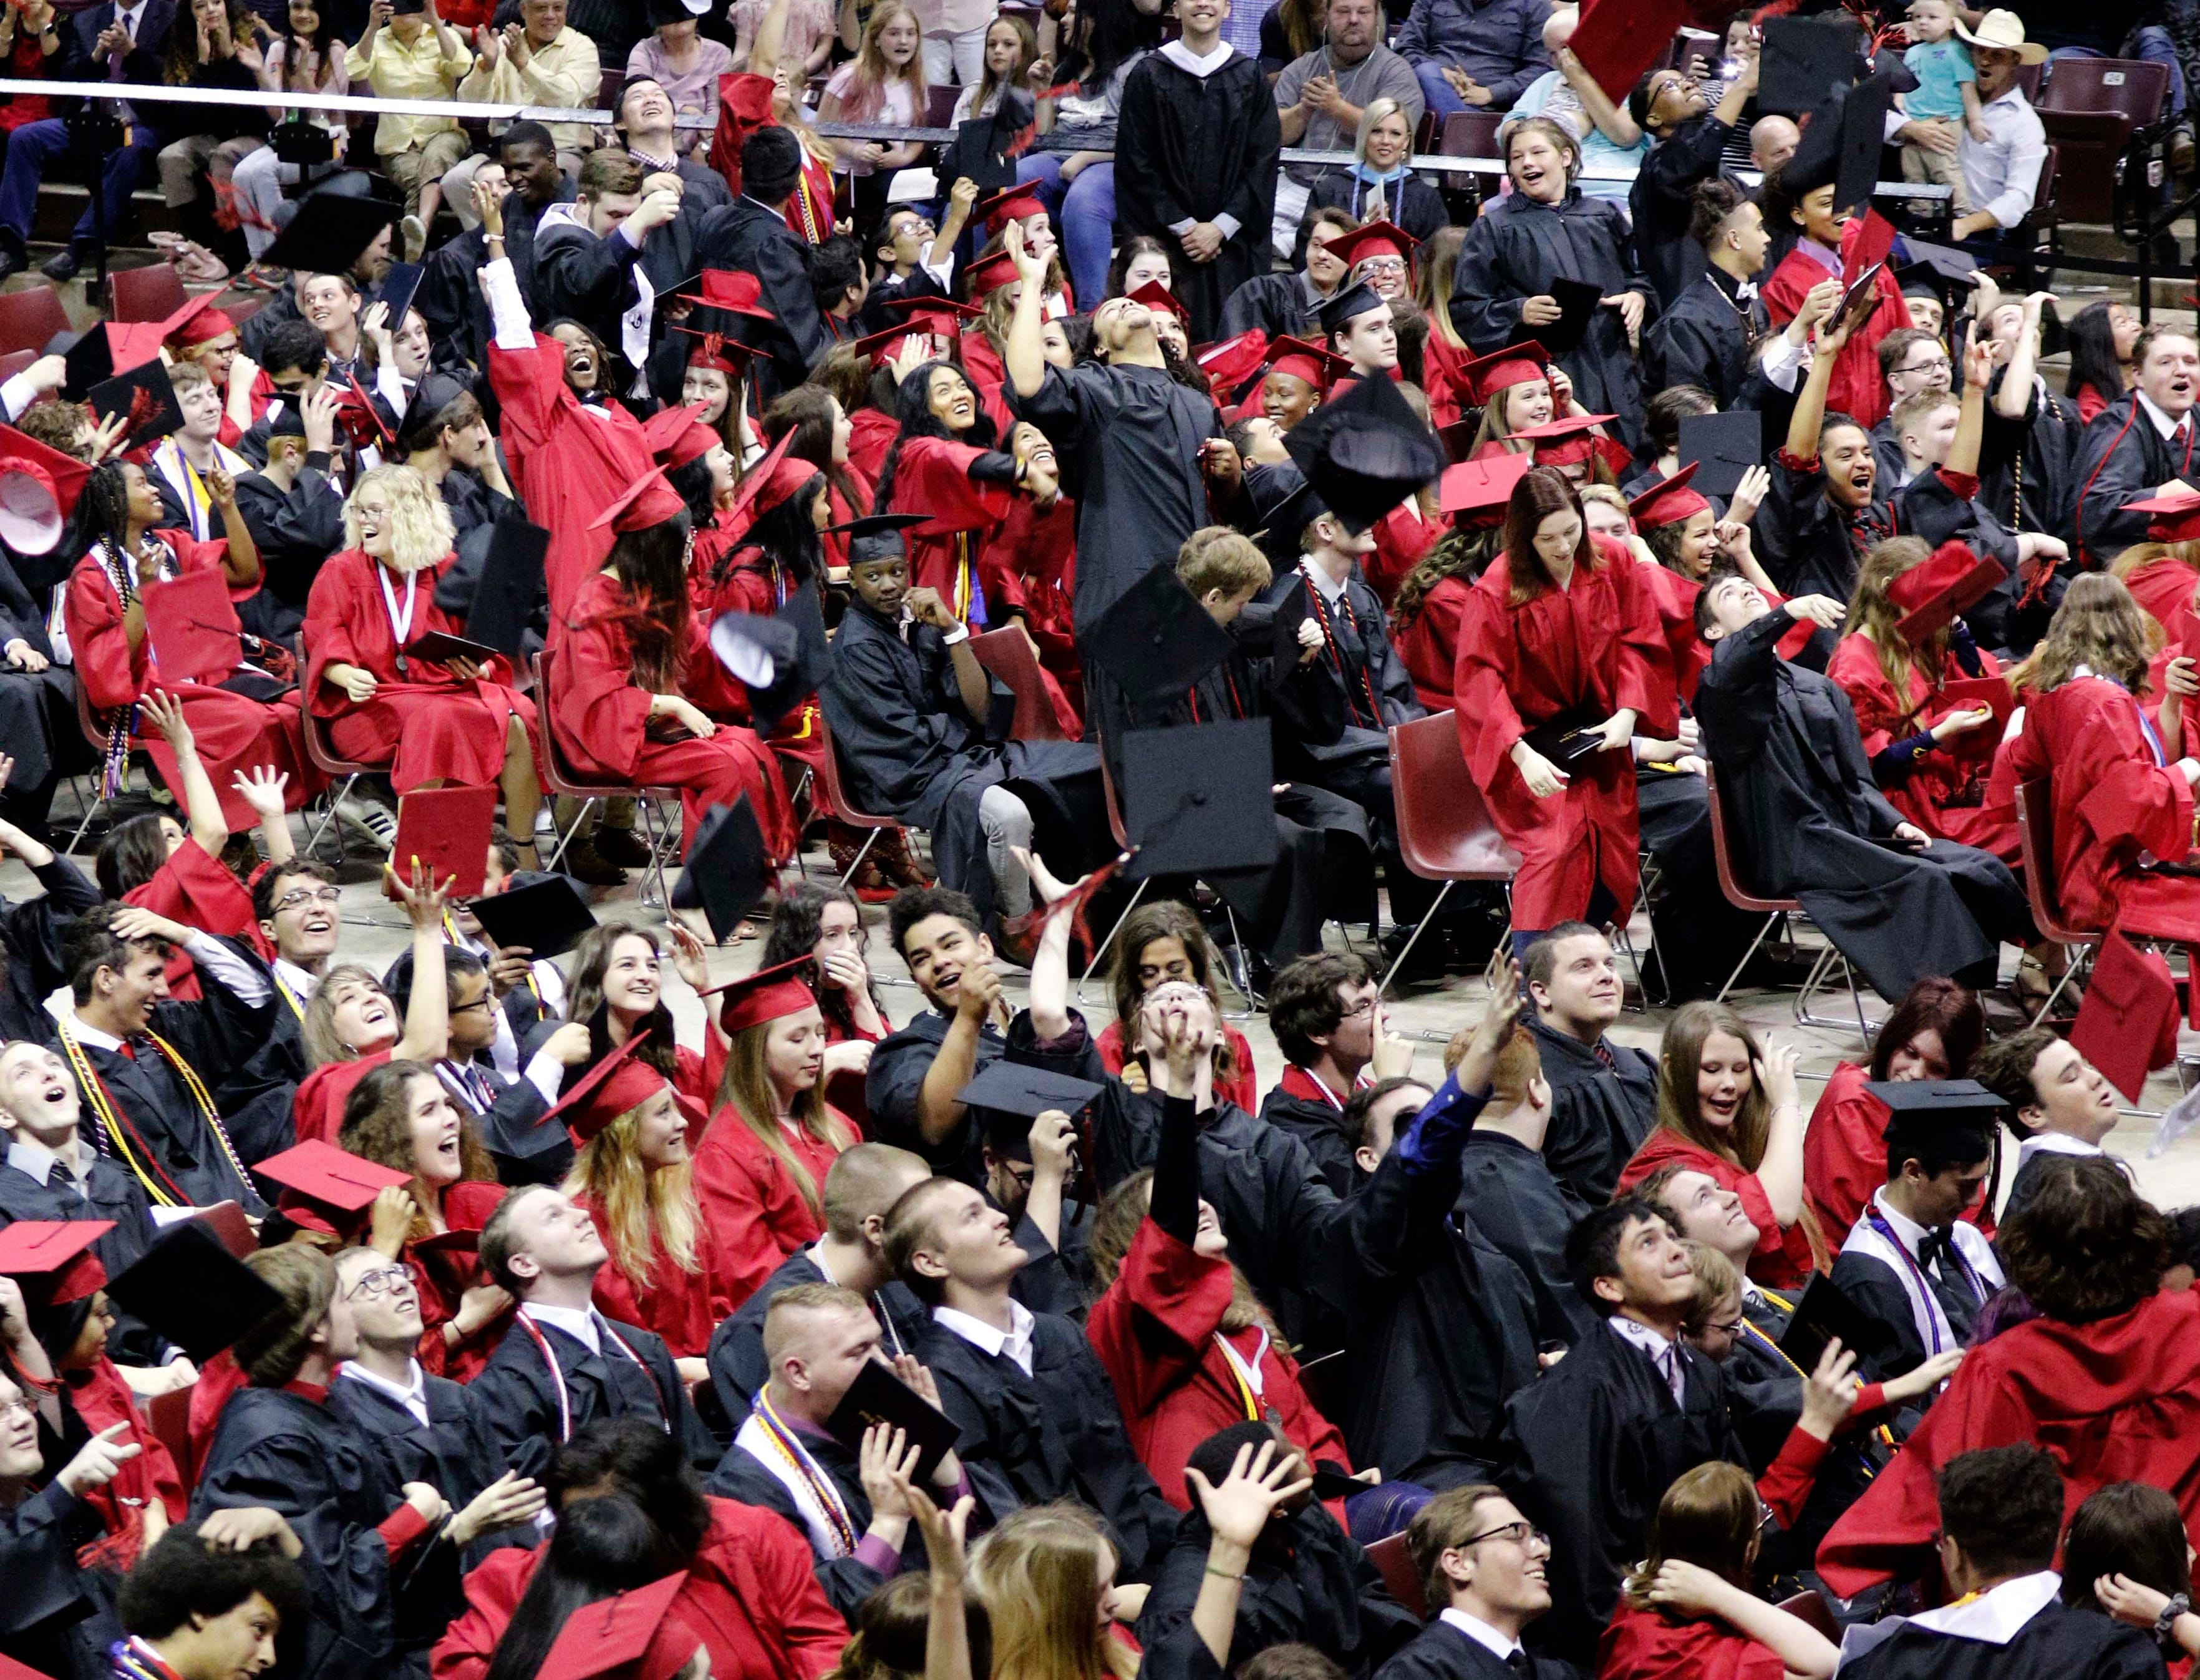 Images from the Central High School graduation at JQH Arena on May 10, 2019